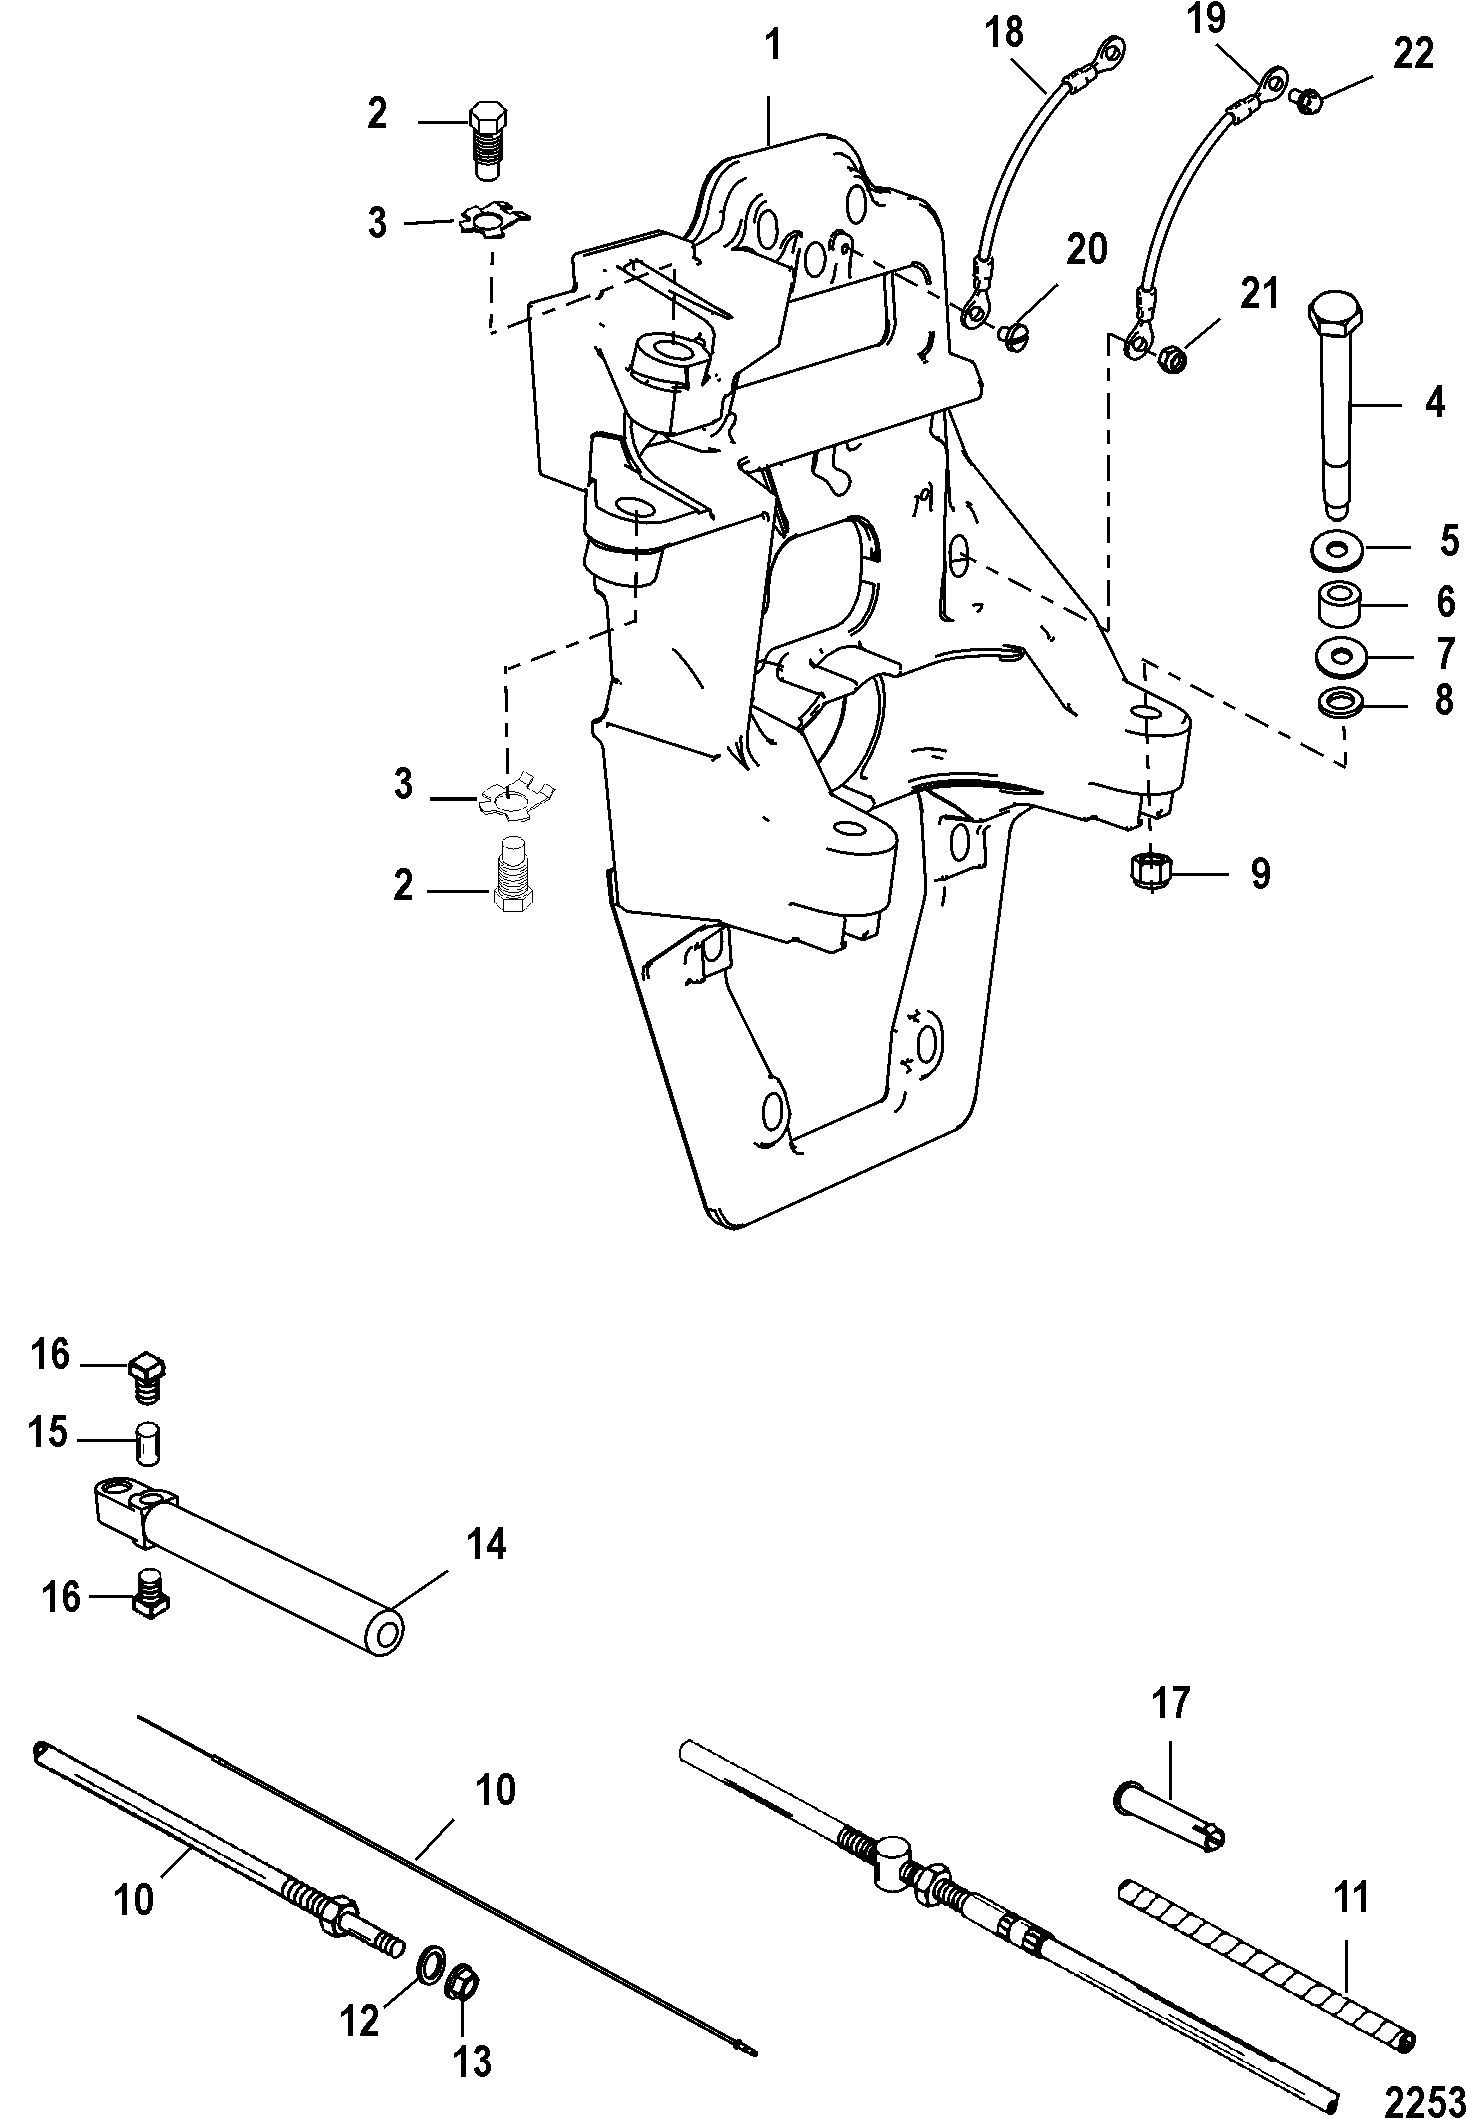 Transom Plate And Shift Cable For Mercruiser Bravo I